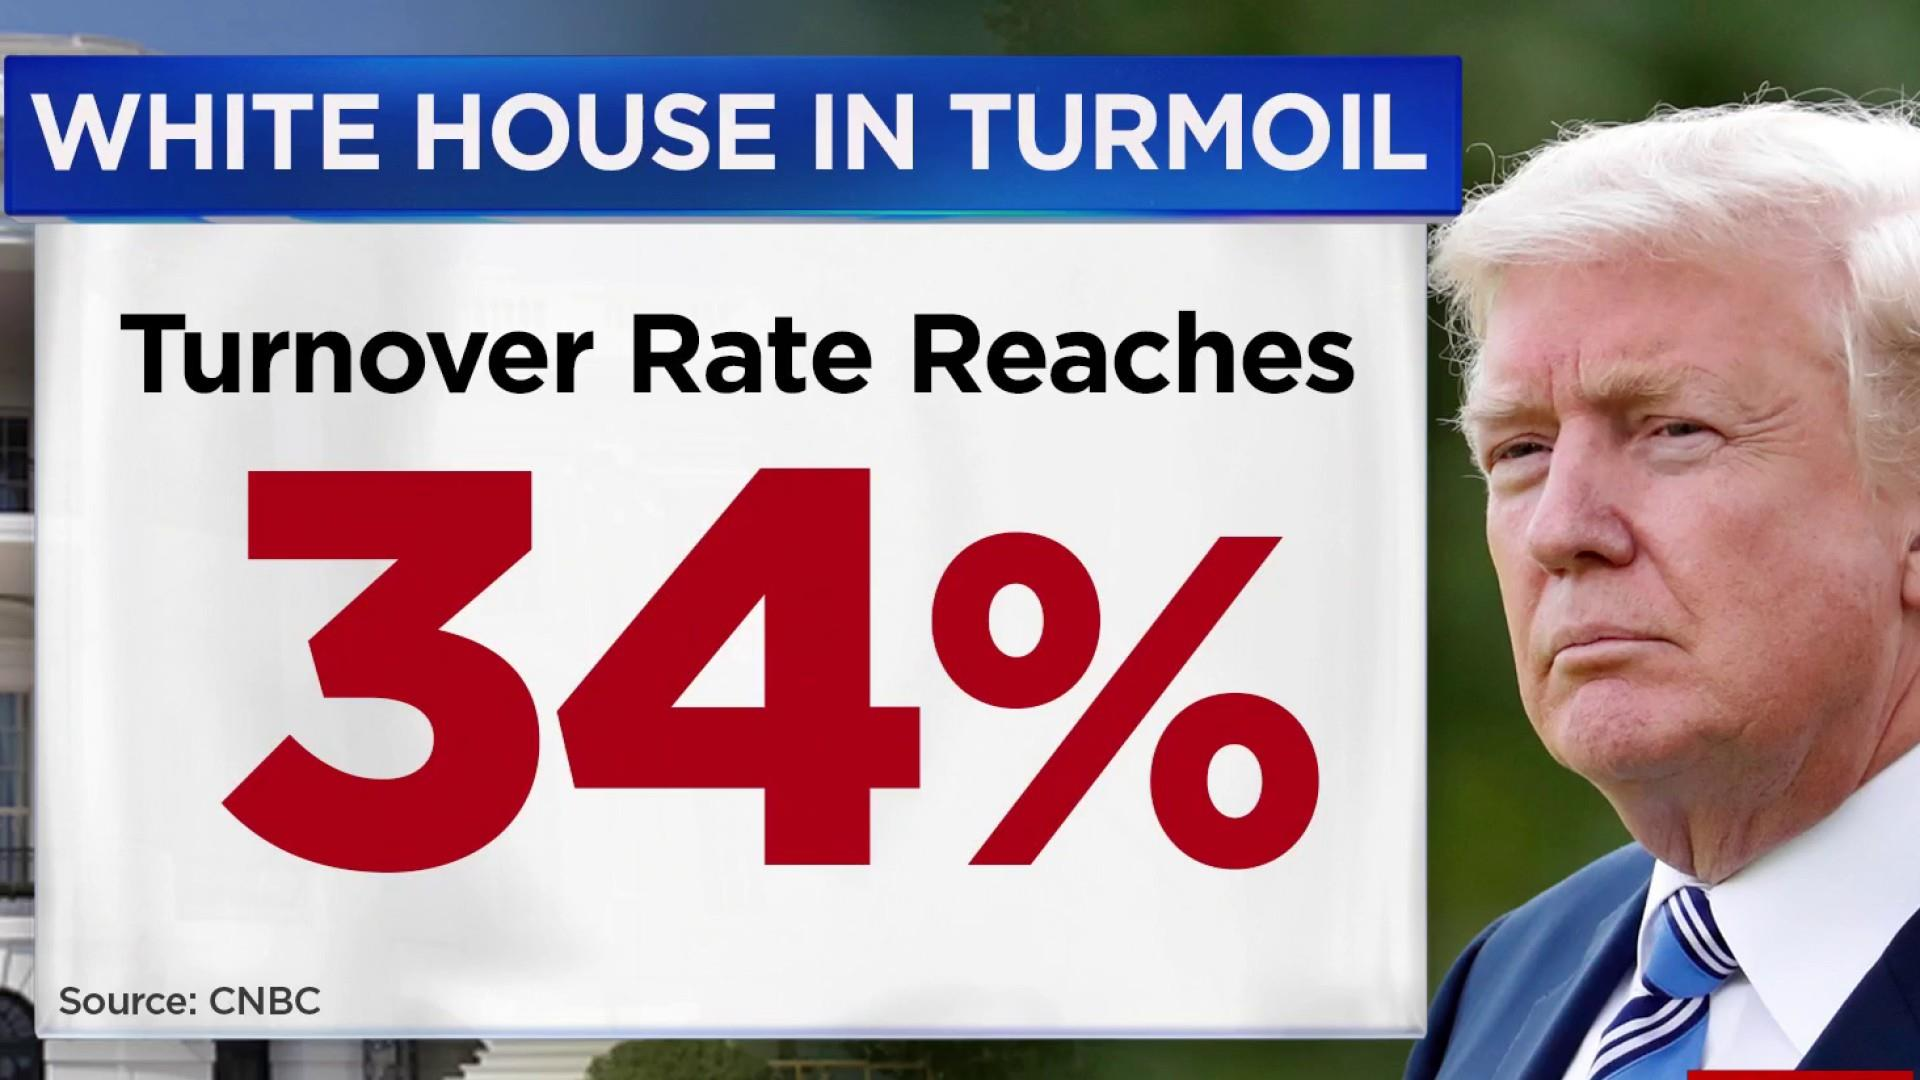 White House is having a high turnover rate